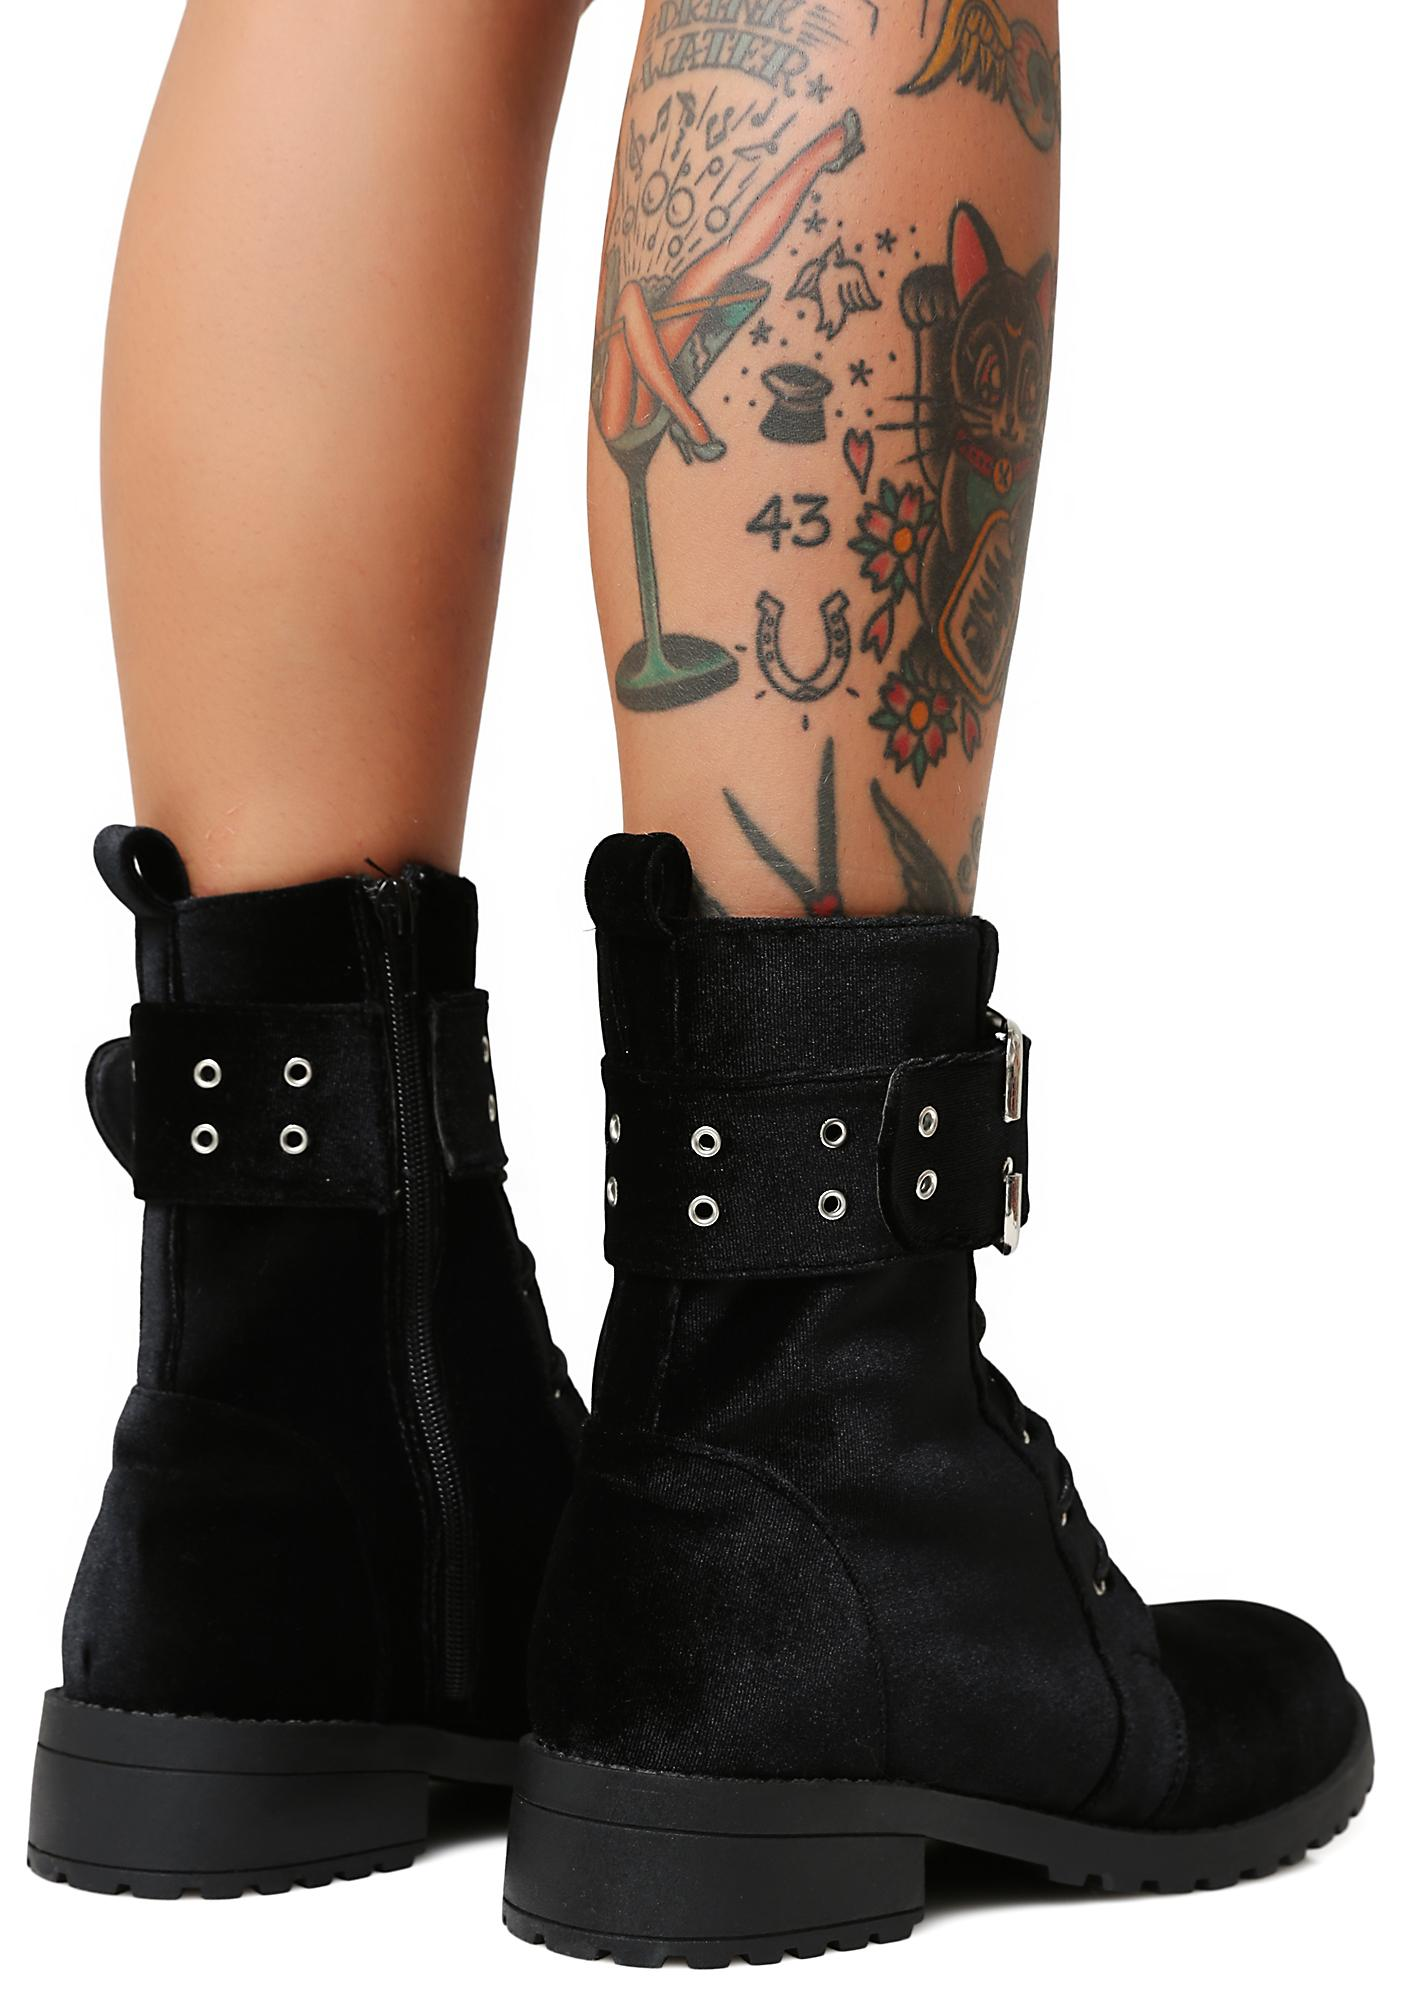 Privileged Onyx Savaged Combat Boots